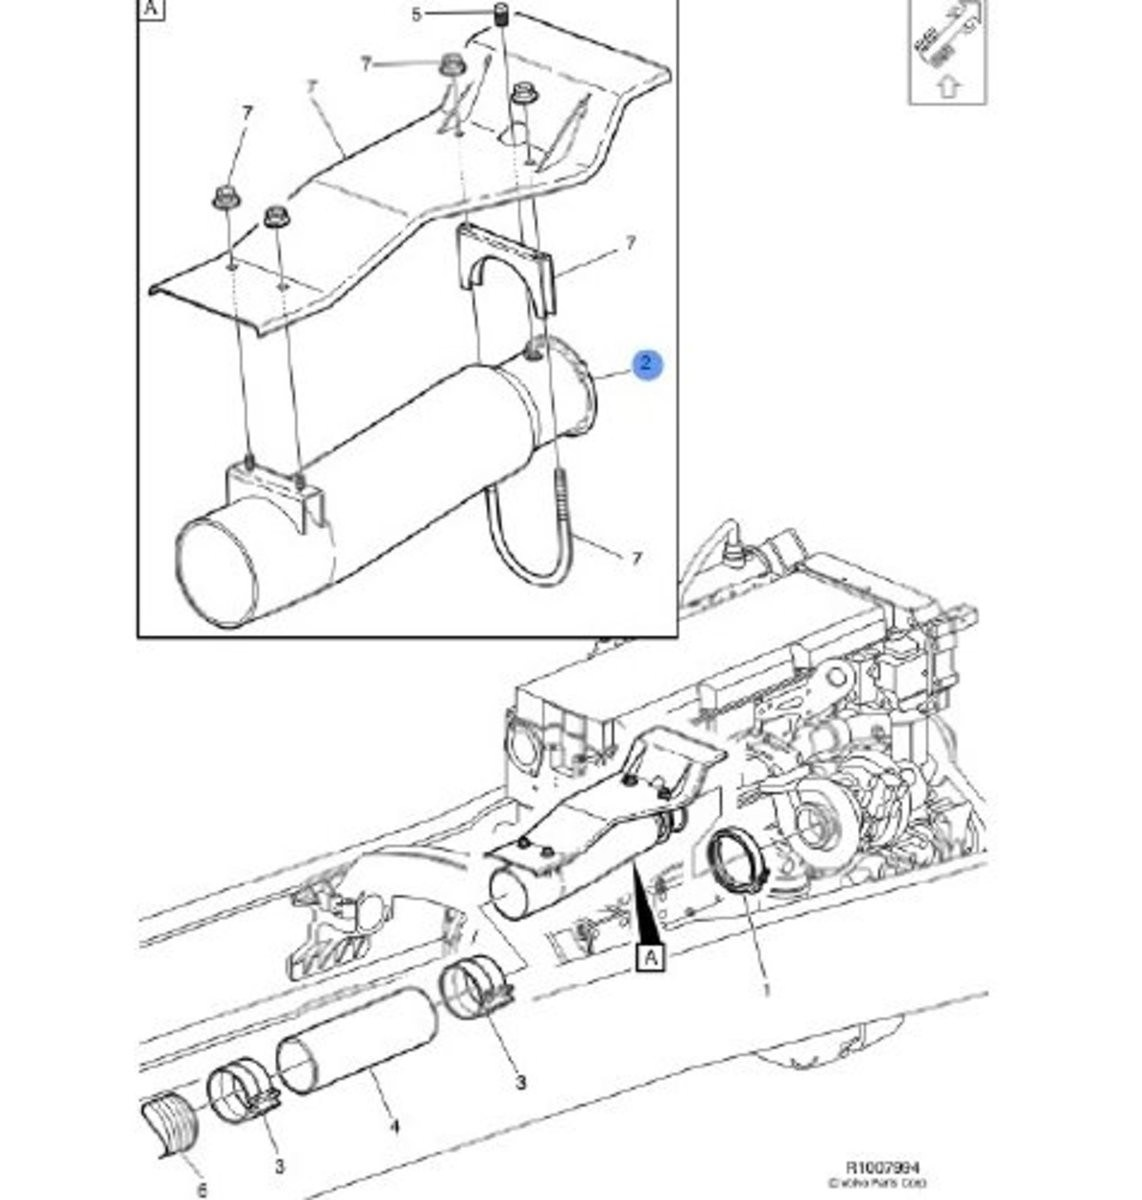 Tz Re Cummins Isx Wiring Diagrams Please Free Diagram